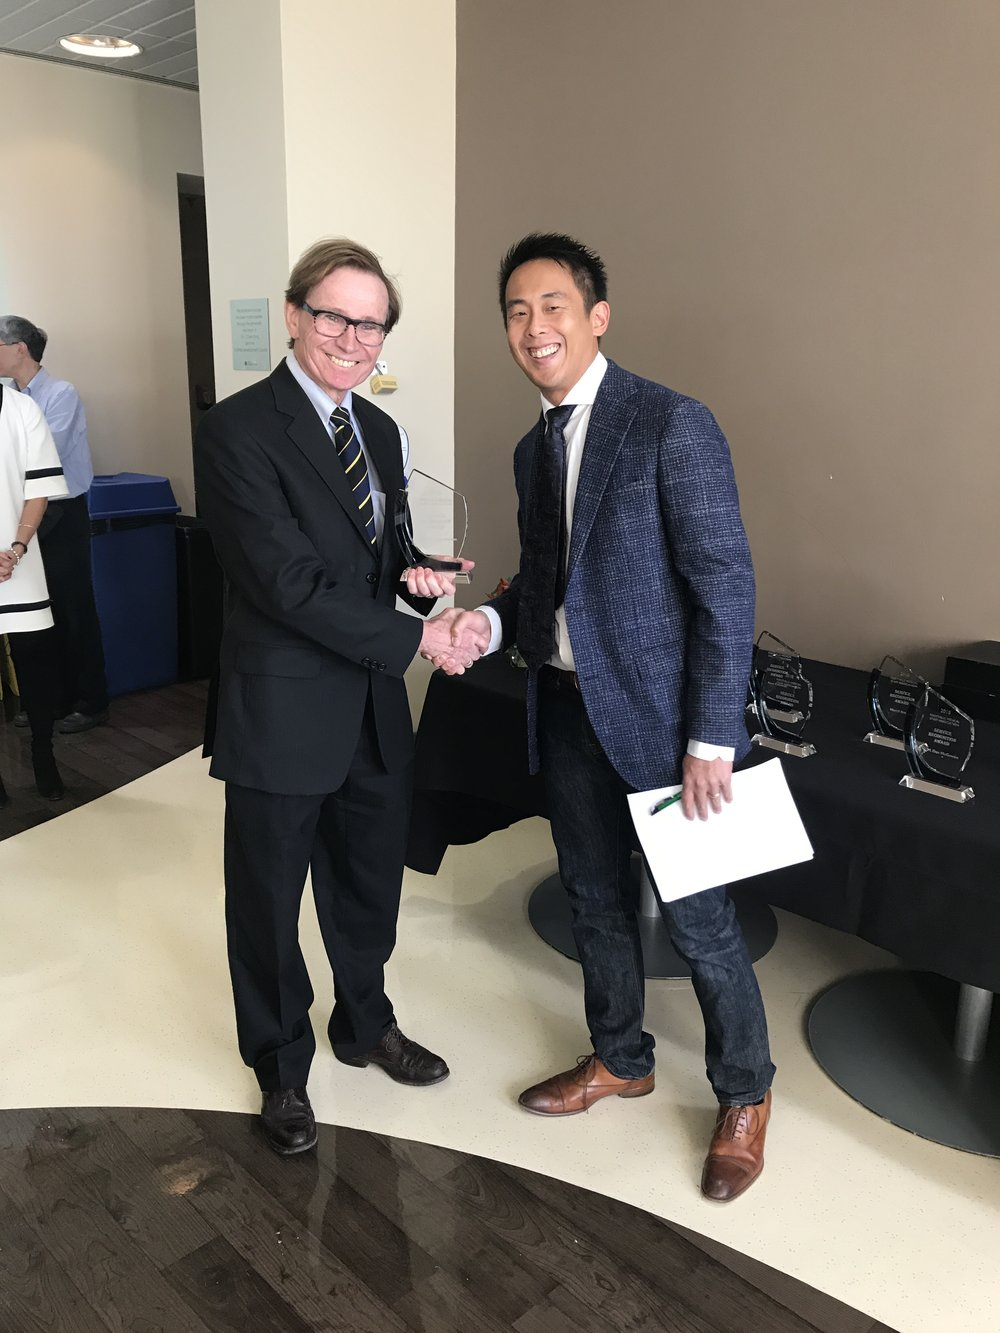 Dr. Ian Anderson & Dr. Trevor Chan